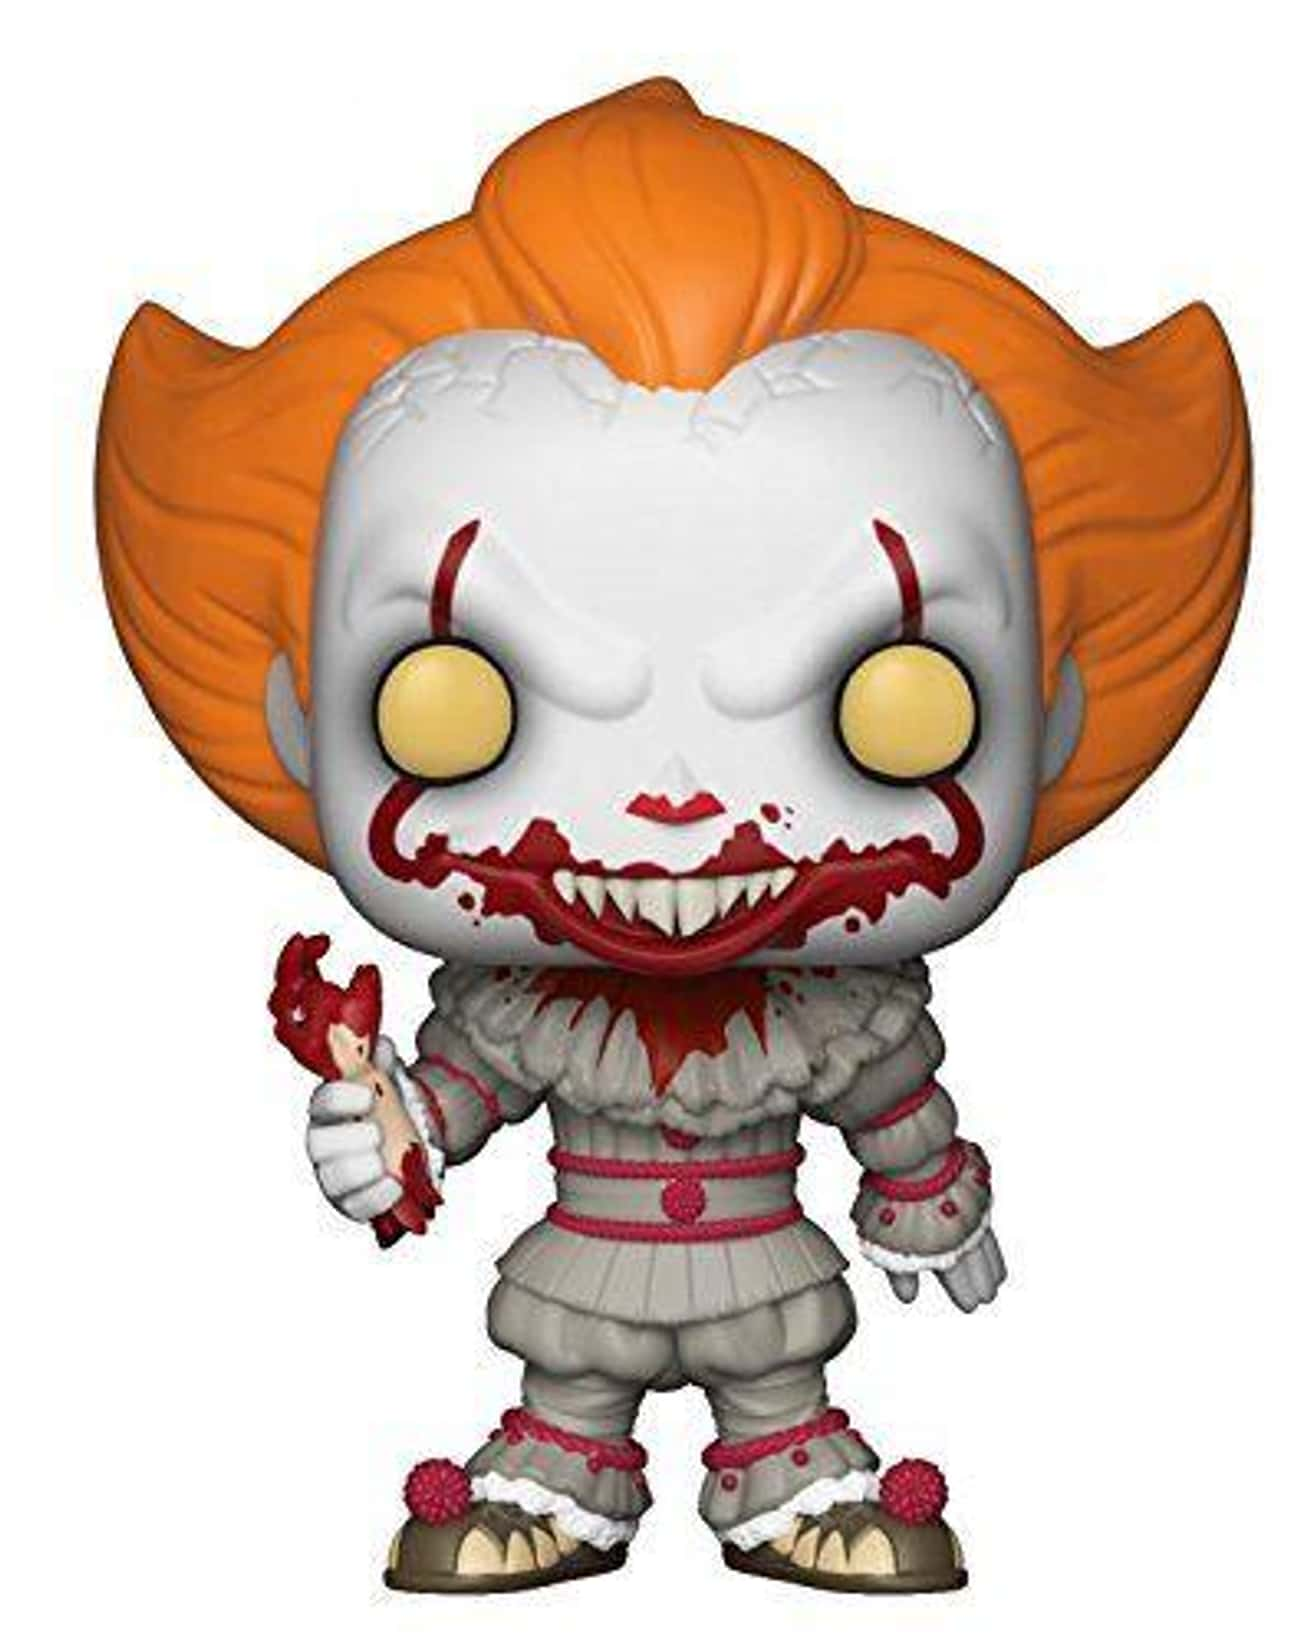 Pennywise From 'IT' With A Sev is listed (or ranked) 3 on the list Creepy Funkos Every Horror Movie Fan Needs